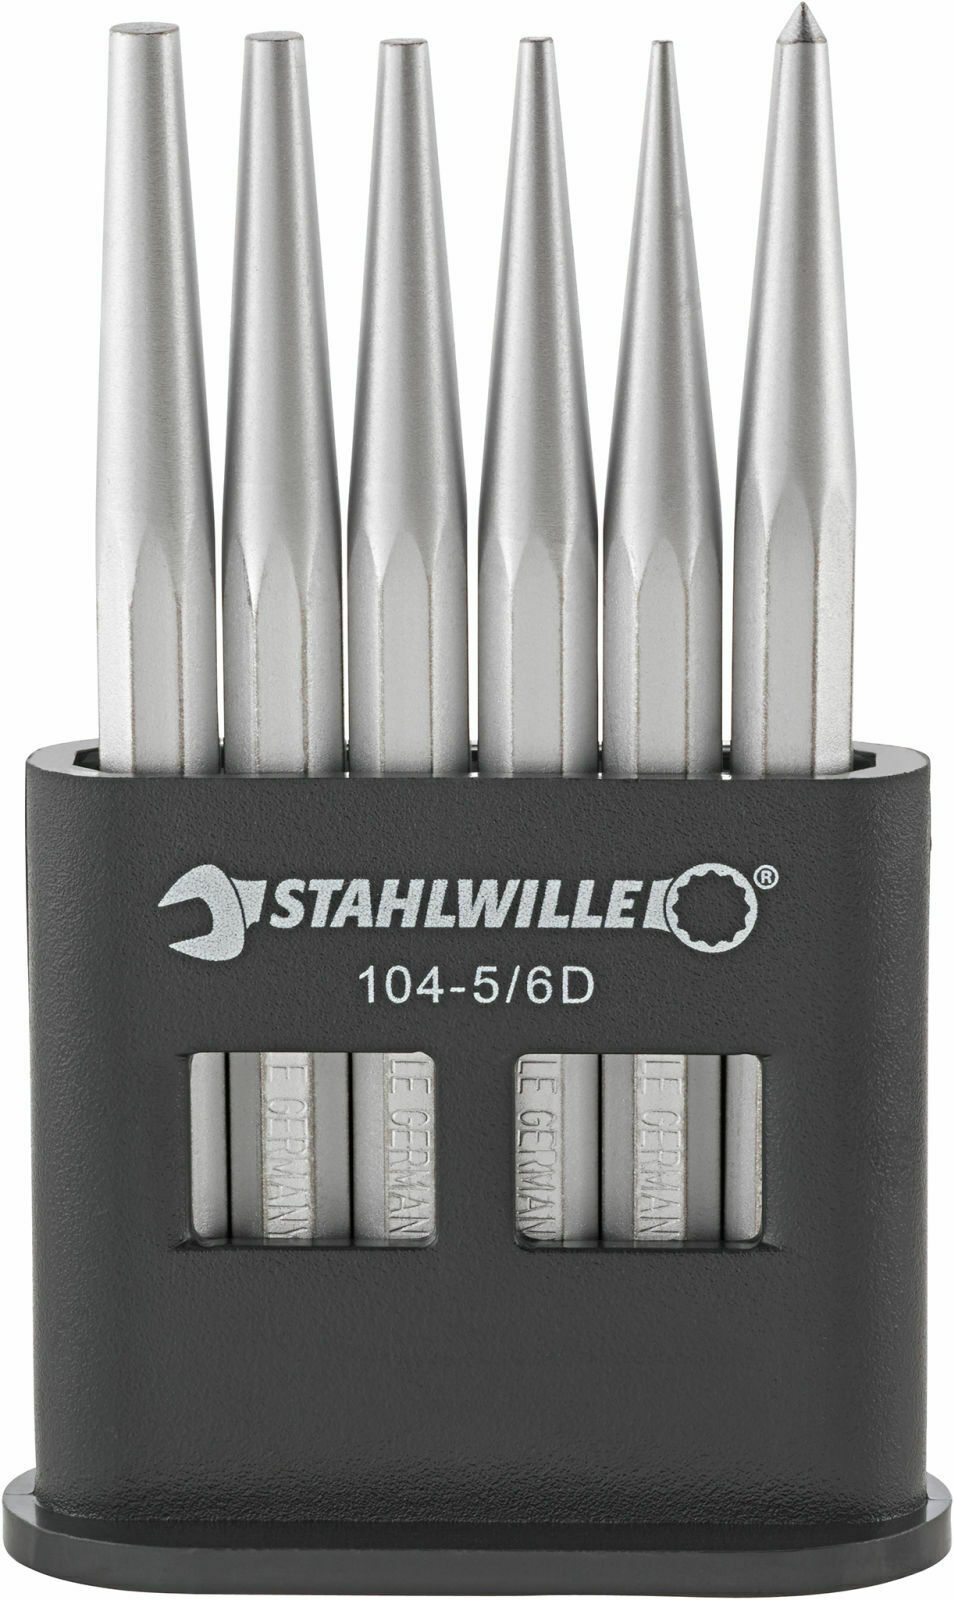 Stahlwille SET DRIFT-PINS, CENTRE PUNCHES 96700601 Set with  6 Psc. 104-5 6 D